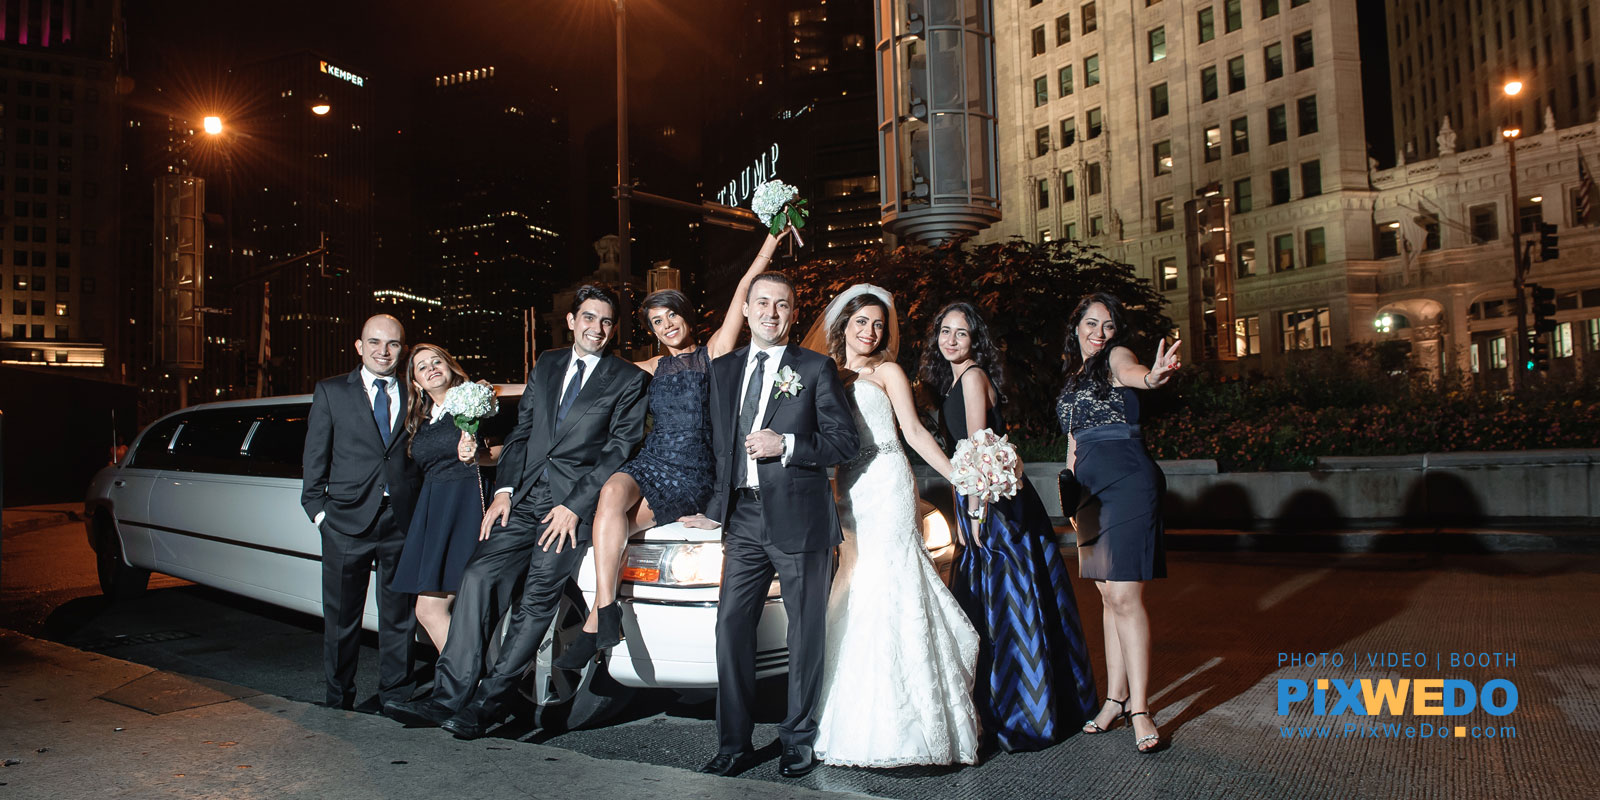 Night picture of Bridal party Michigan Avenue near Wrigley building Tramp tower